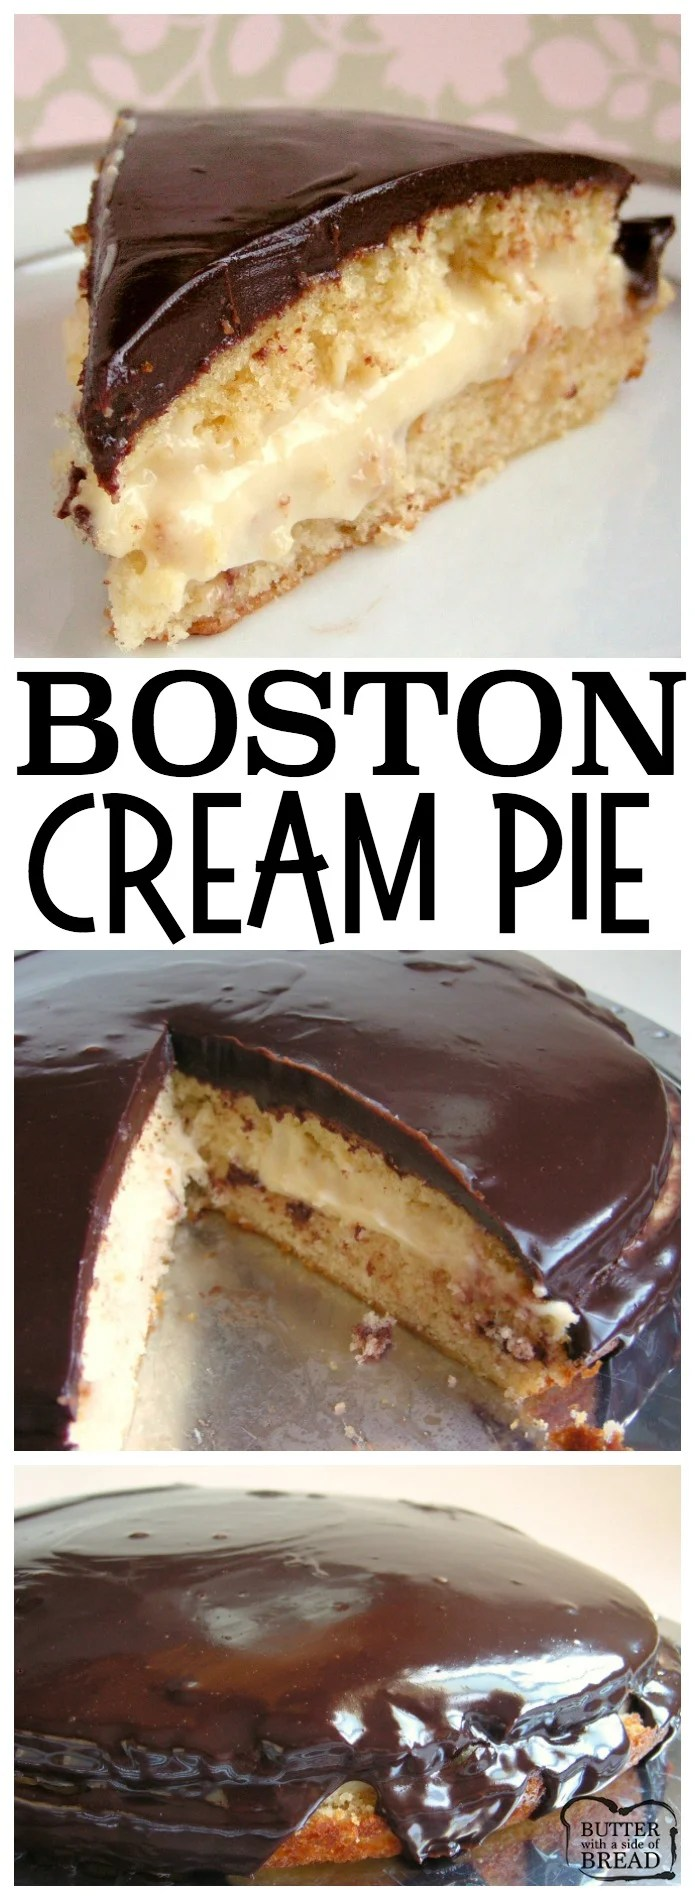 Boston Cream Pie made from scratch in your own kitchen! Step by step instructions on how to make vanilla custard, easy single layer cake and smooth, rich chocolate ganache for this classic Boston Cream Pie recipe. Layer it all together and you've got a show stopping dessert that tastes incredible. Easy Boston Creme Pie recipe from Butter With A Side of Bread #dessert #custard #chocolate #cake #pie #BostonCreamPie #food #recipe #homemade